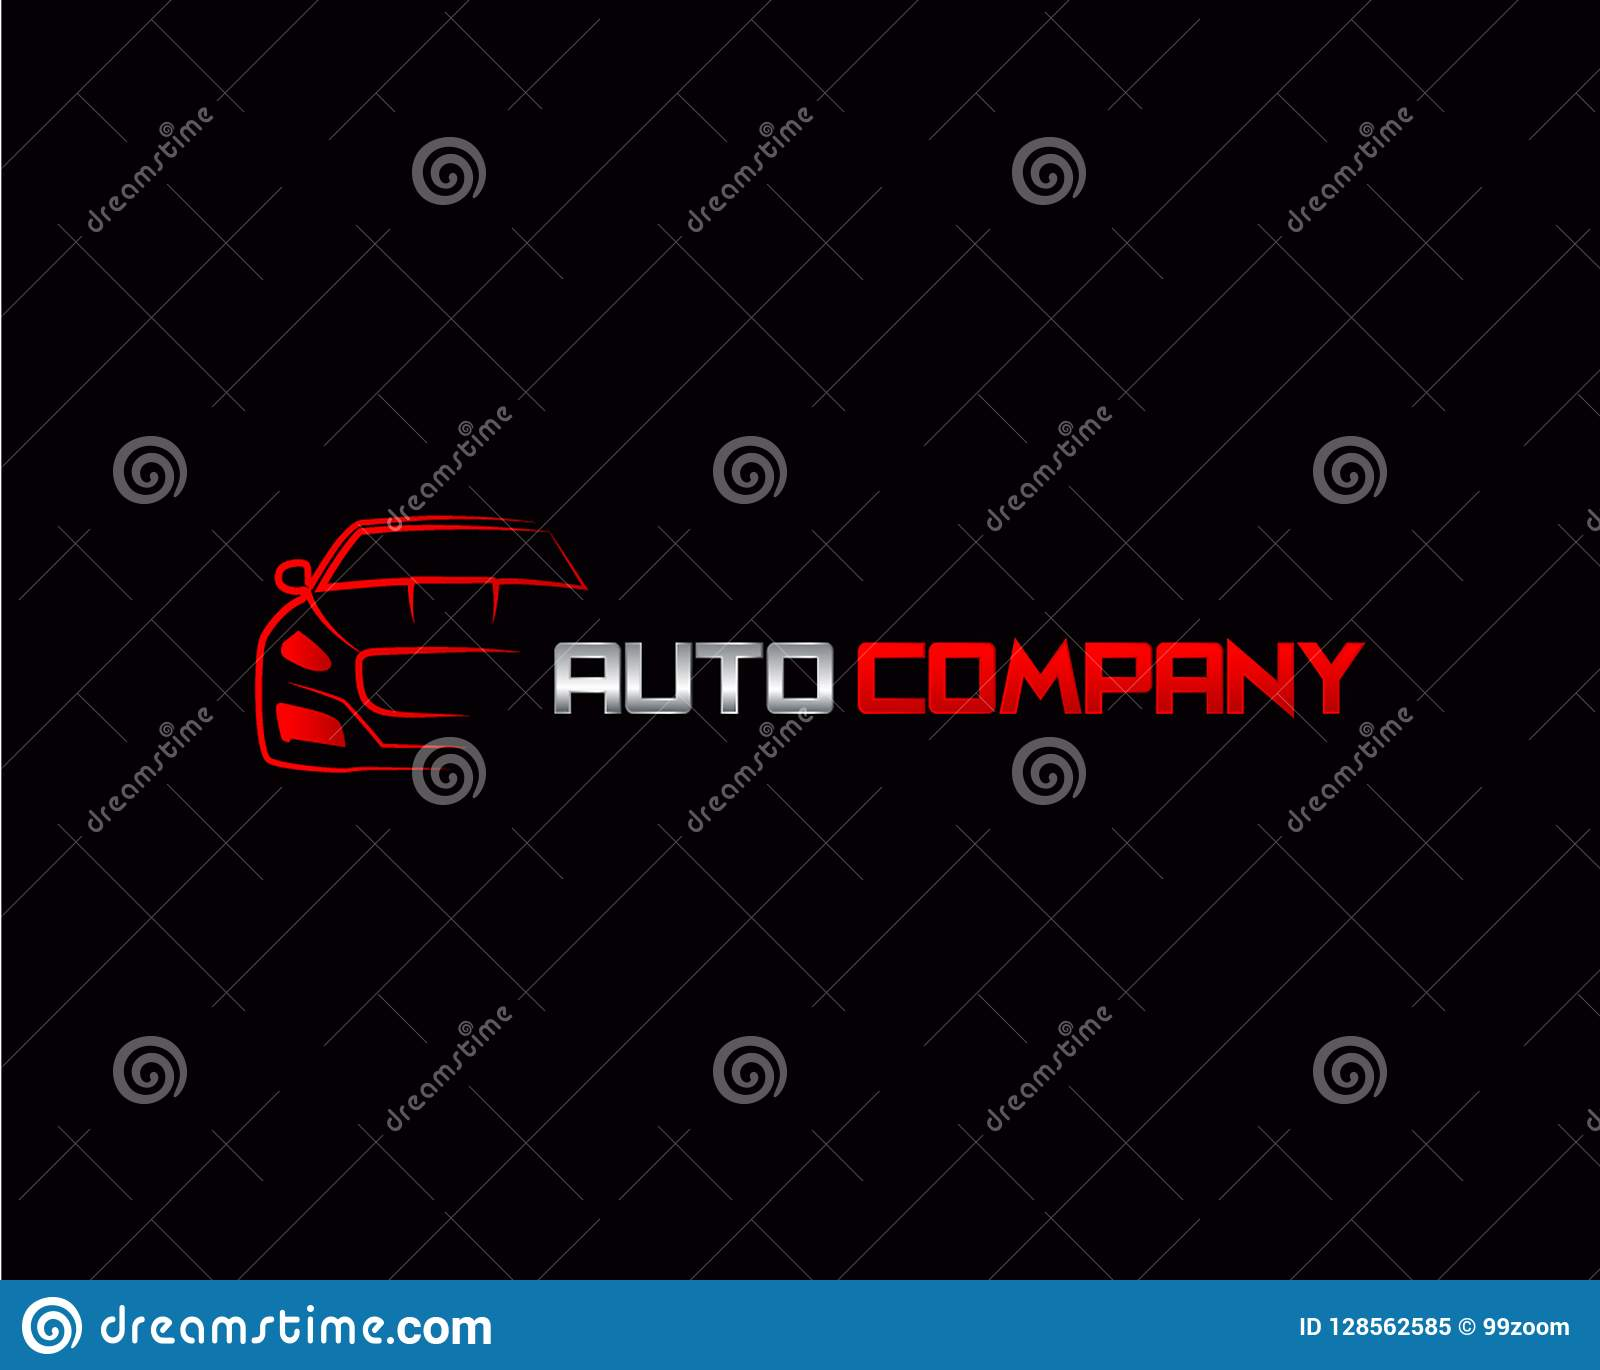 Modern Auto Company Logo Design Concept With Sports Car